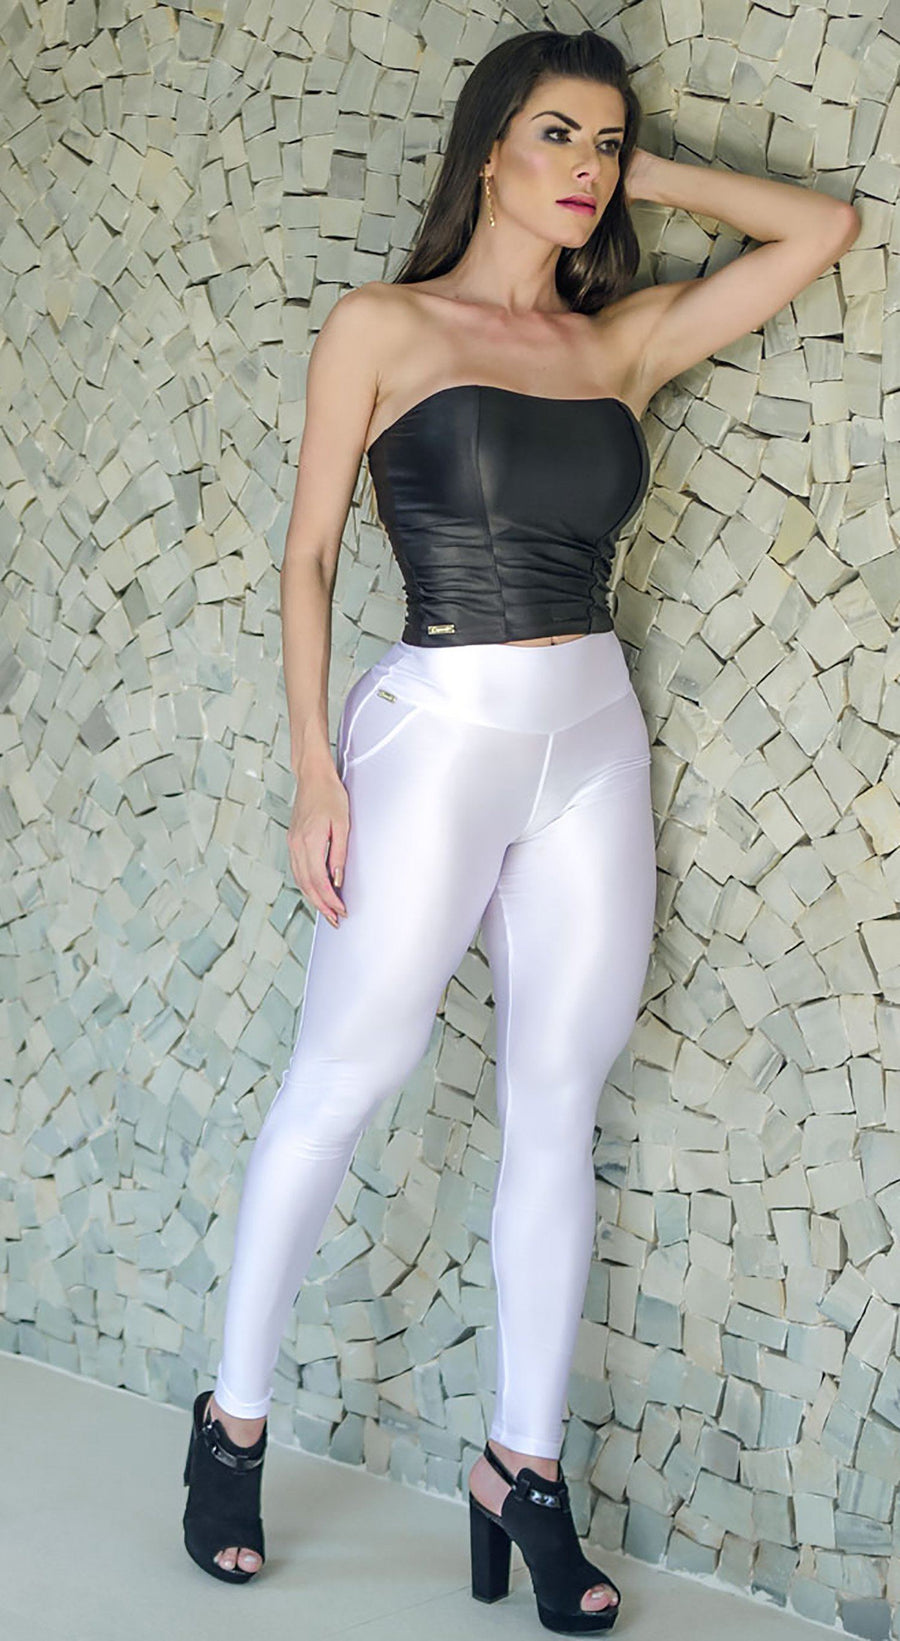 Brazilian Workout Legging - Push Up Shooting Star White